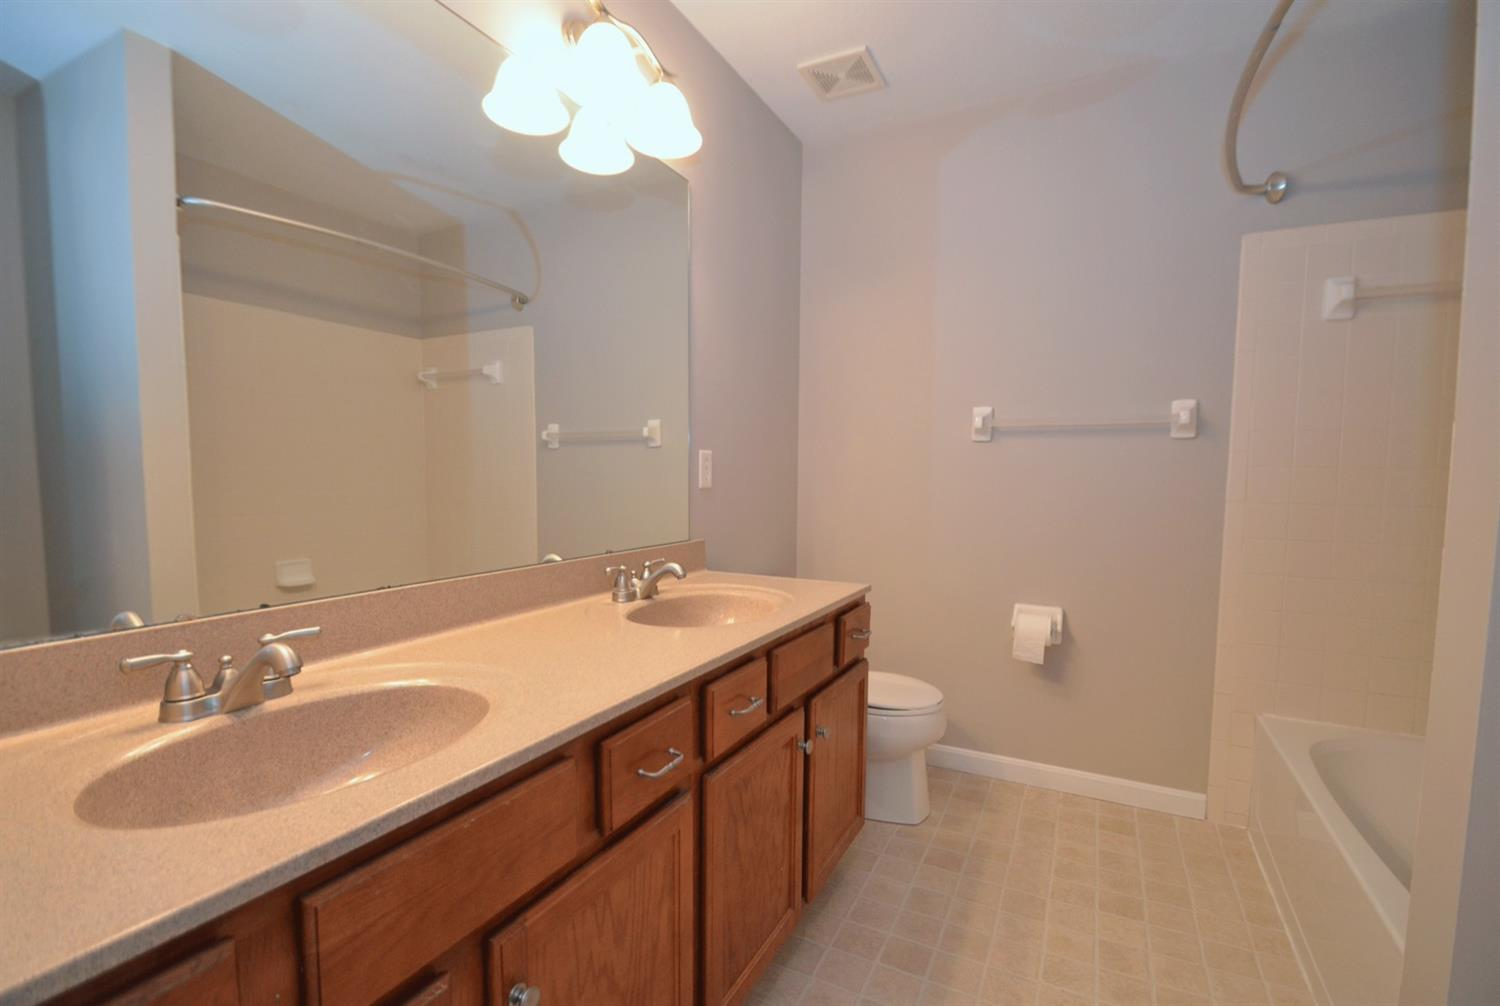 The second floor bath features a large double vanity and a tub/shower.